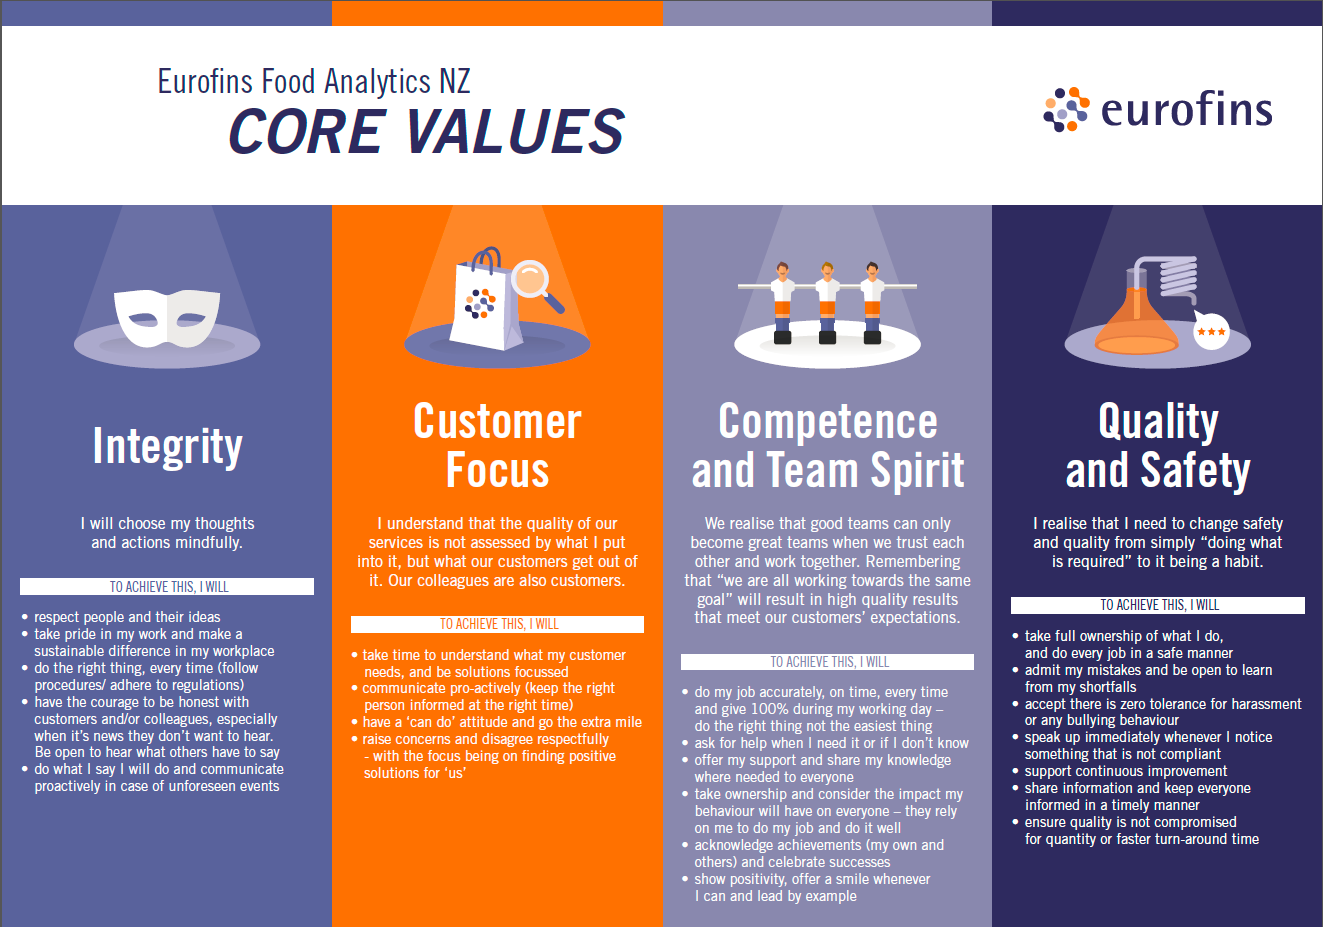 Eurofins Vision Mission And Values